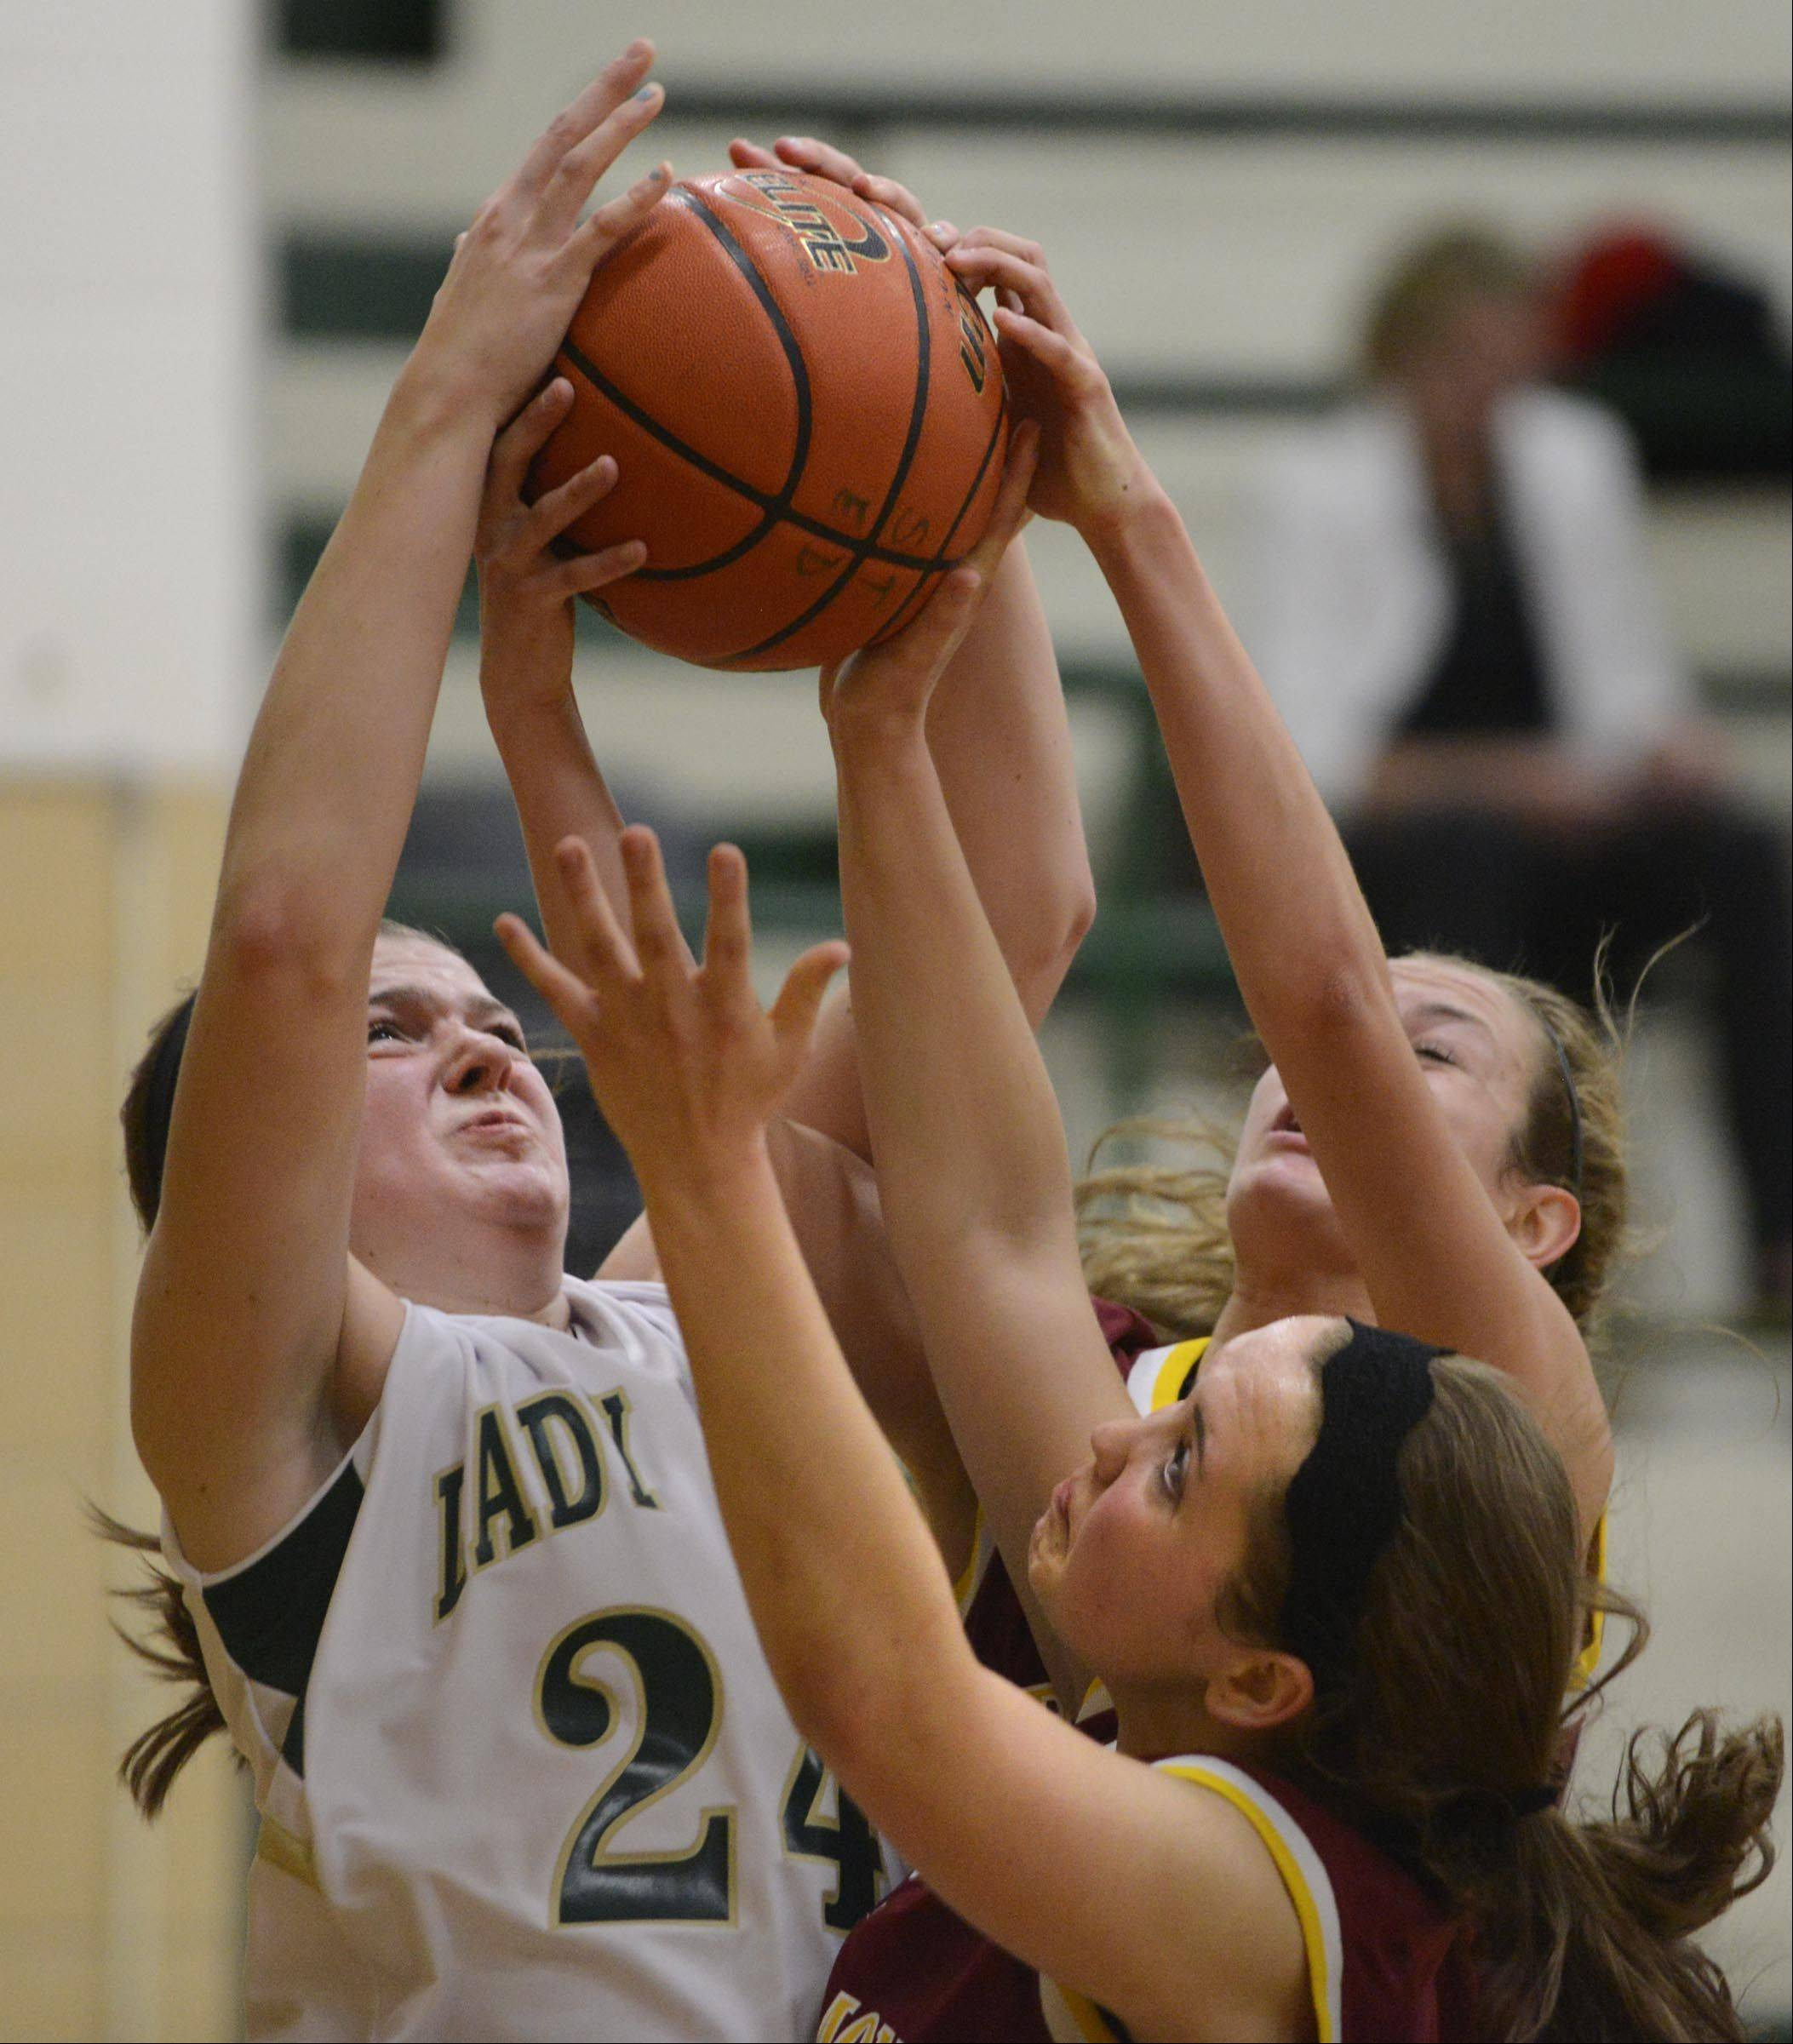 St. Edward's Katie Swanson fights for a rebound against Westmont's Rachel Kurt and Annie Carlson Tuesday in Elgin.